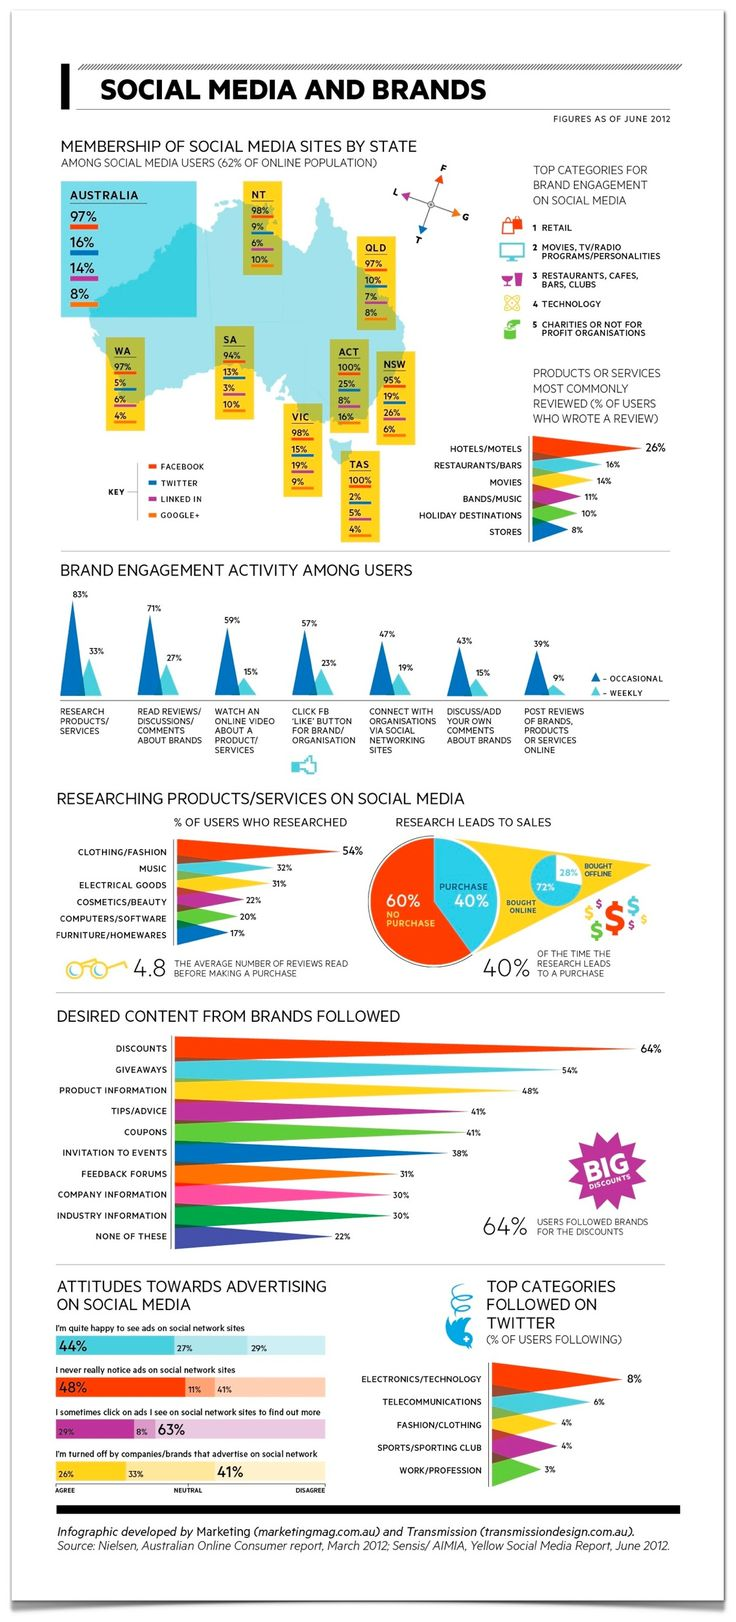 Top Categories for Brand Engagent in Social Media in Australia: the nonprofit sector is 5th #npau